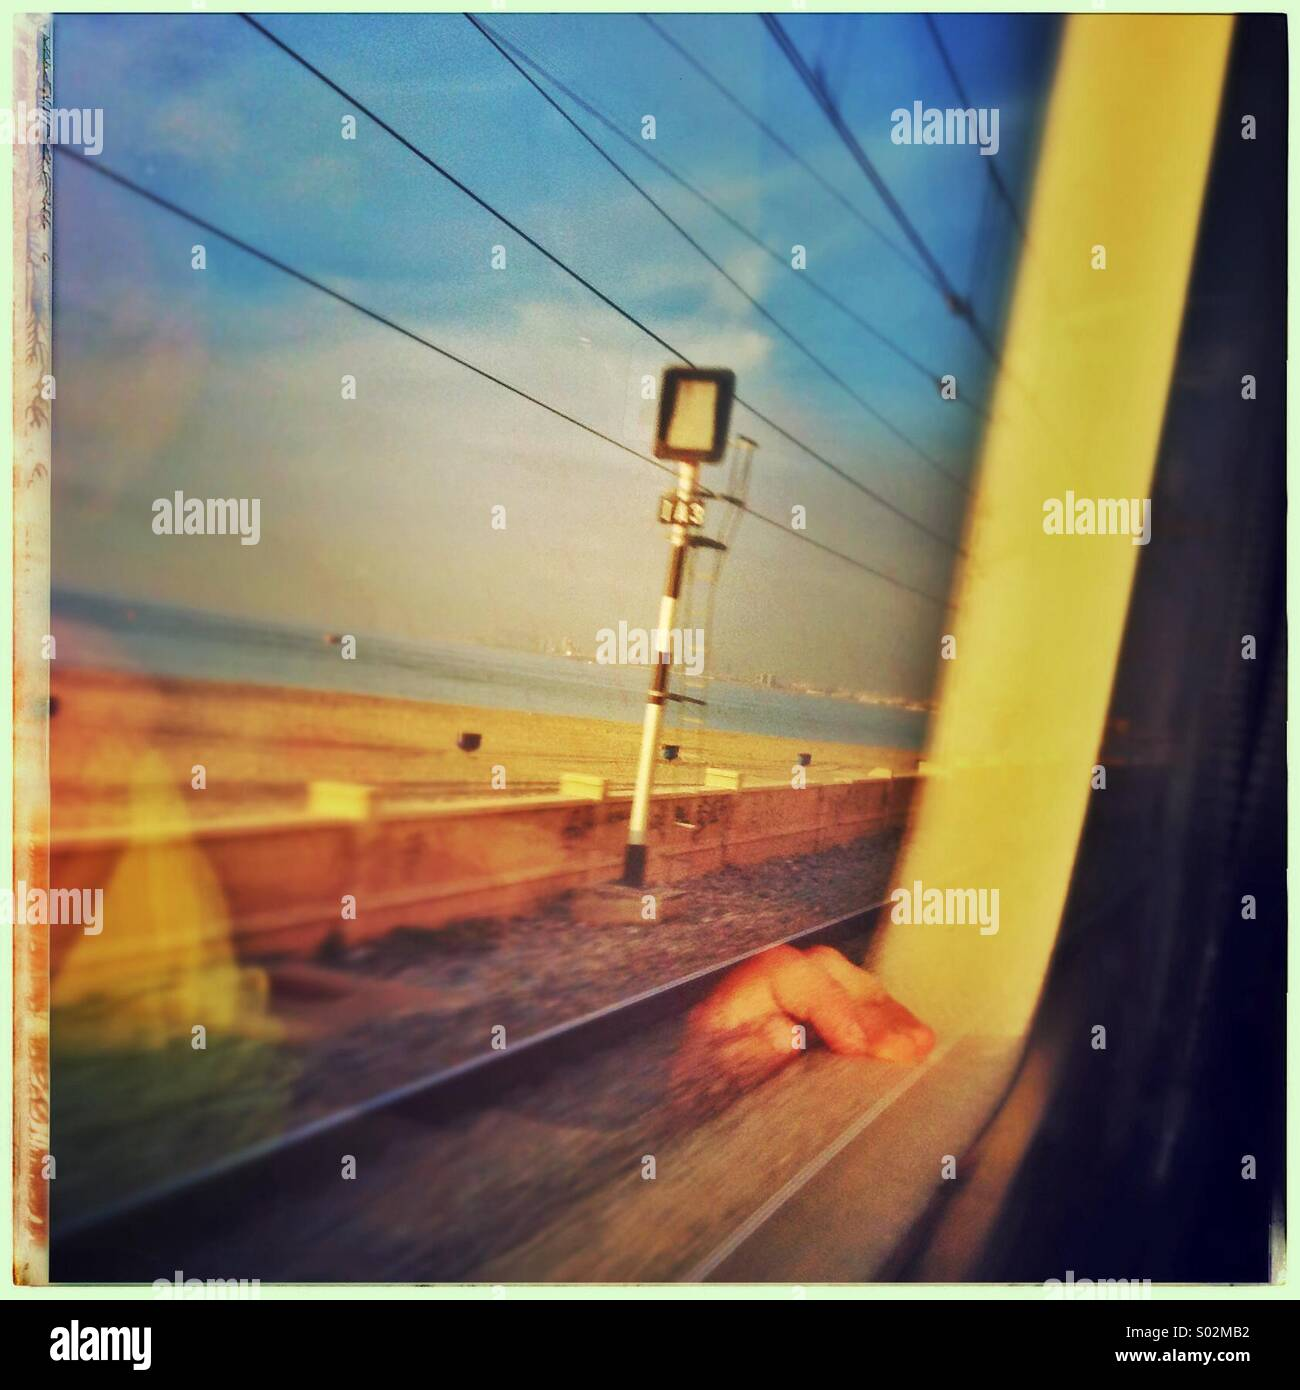 Reflection of a hand of a young boy looking out of train window on the north of Barcelona coast, Catalonia, Spain - Stock Image